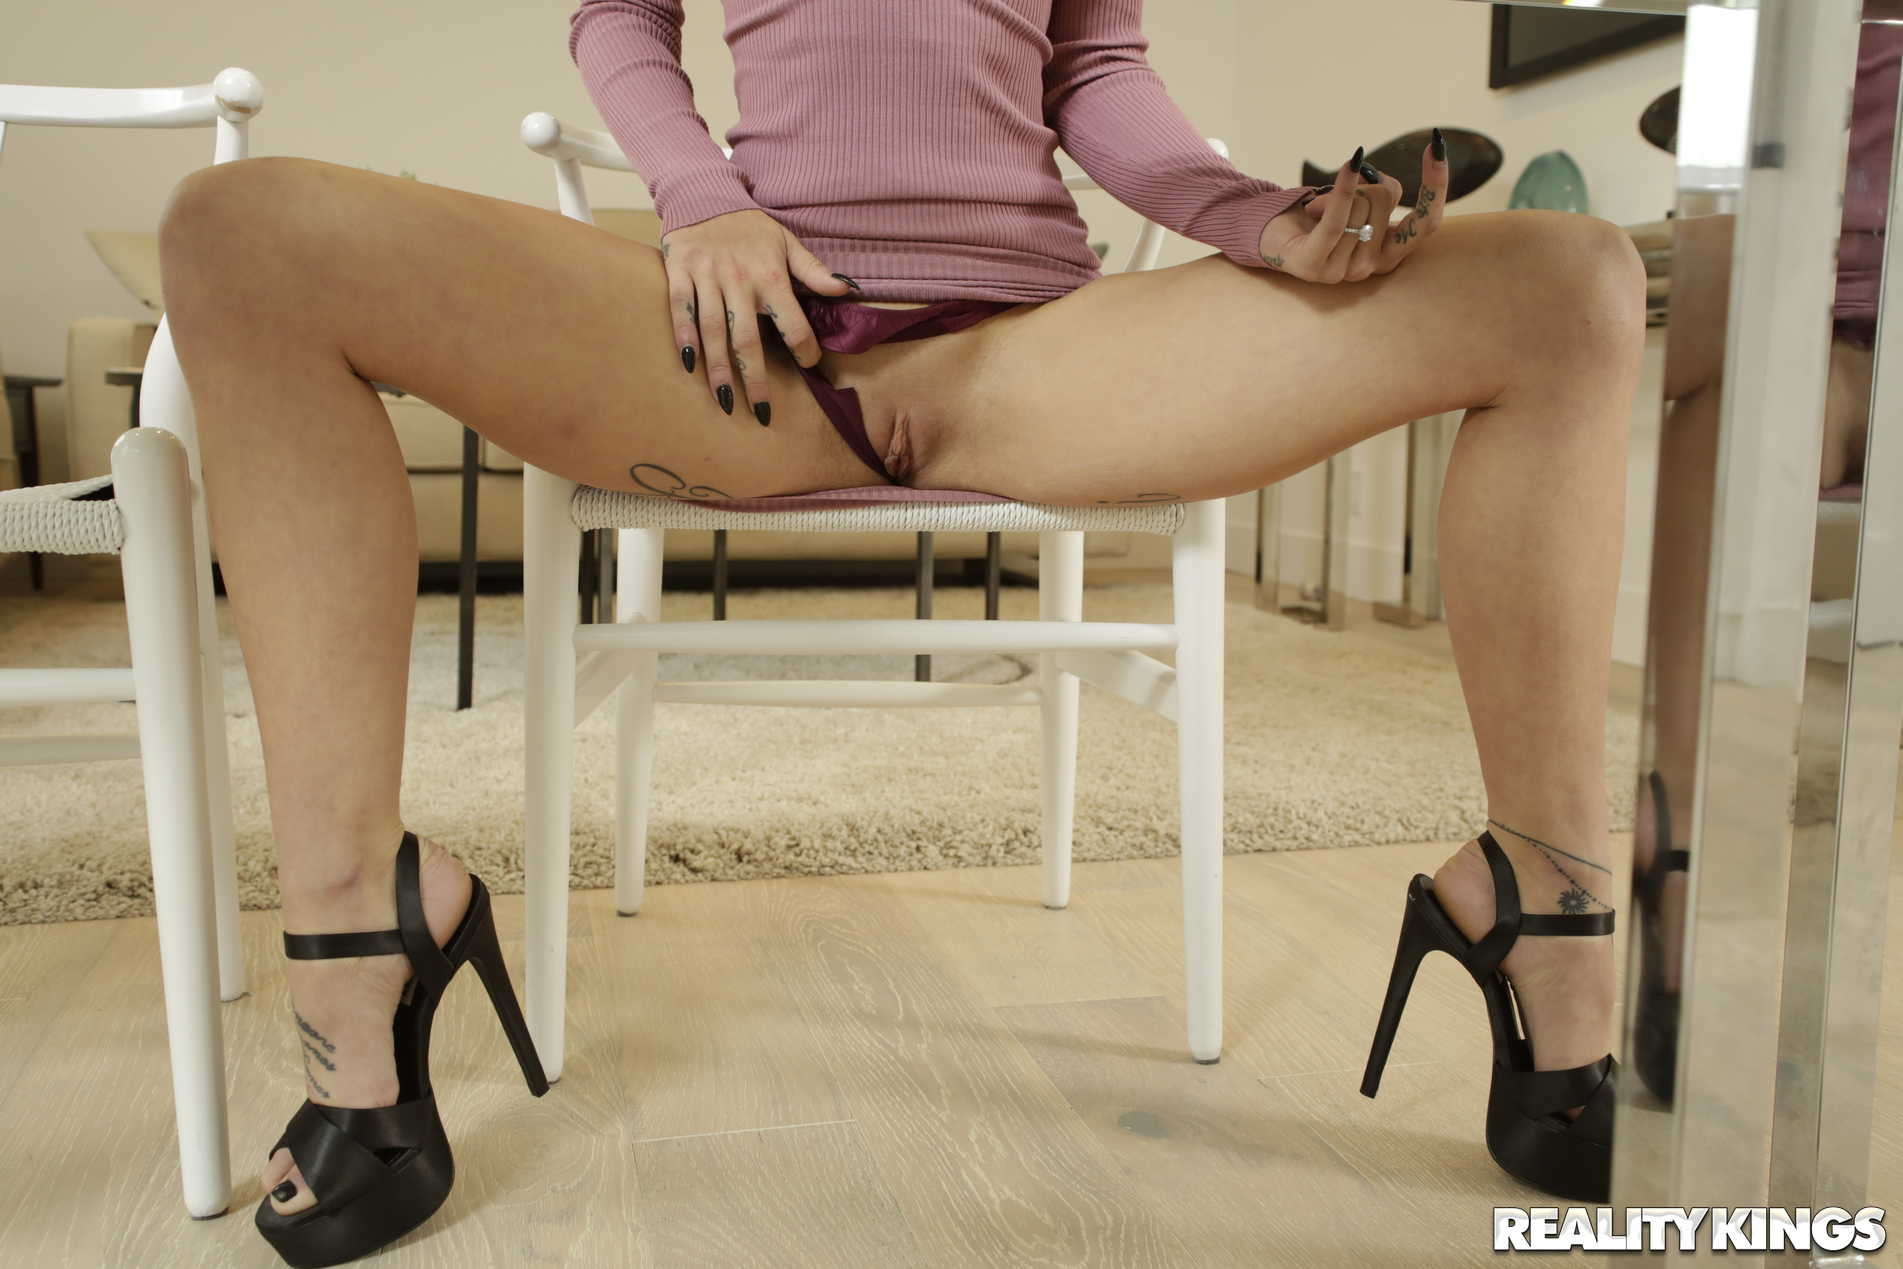 Reality Kings 'Kali Wants His Attention' starring Kali Roses (Photo 189)